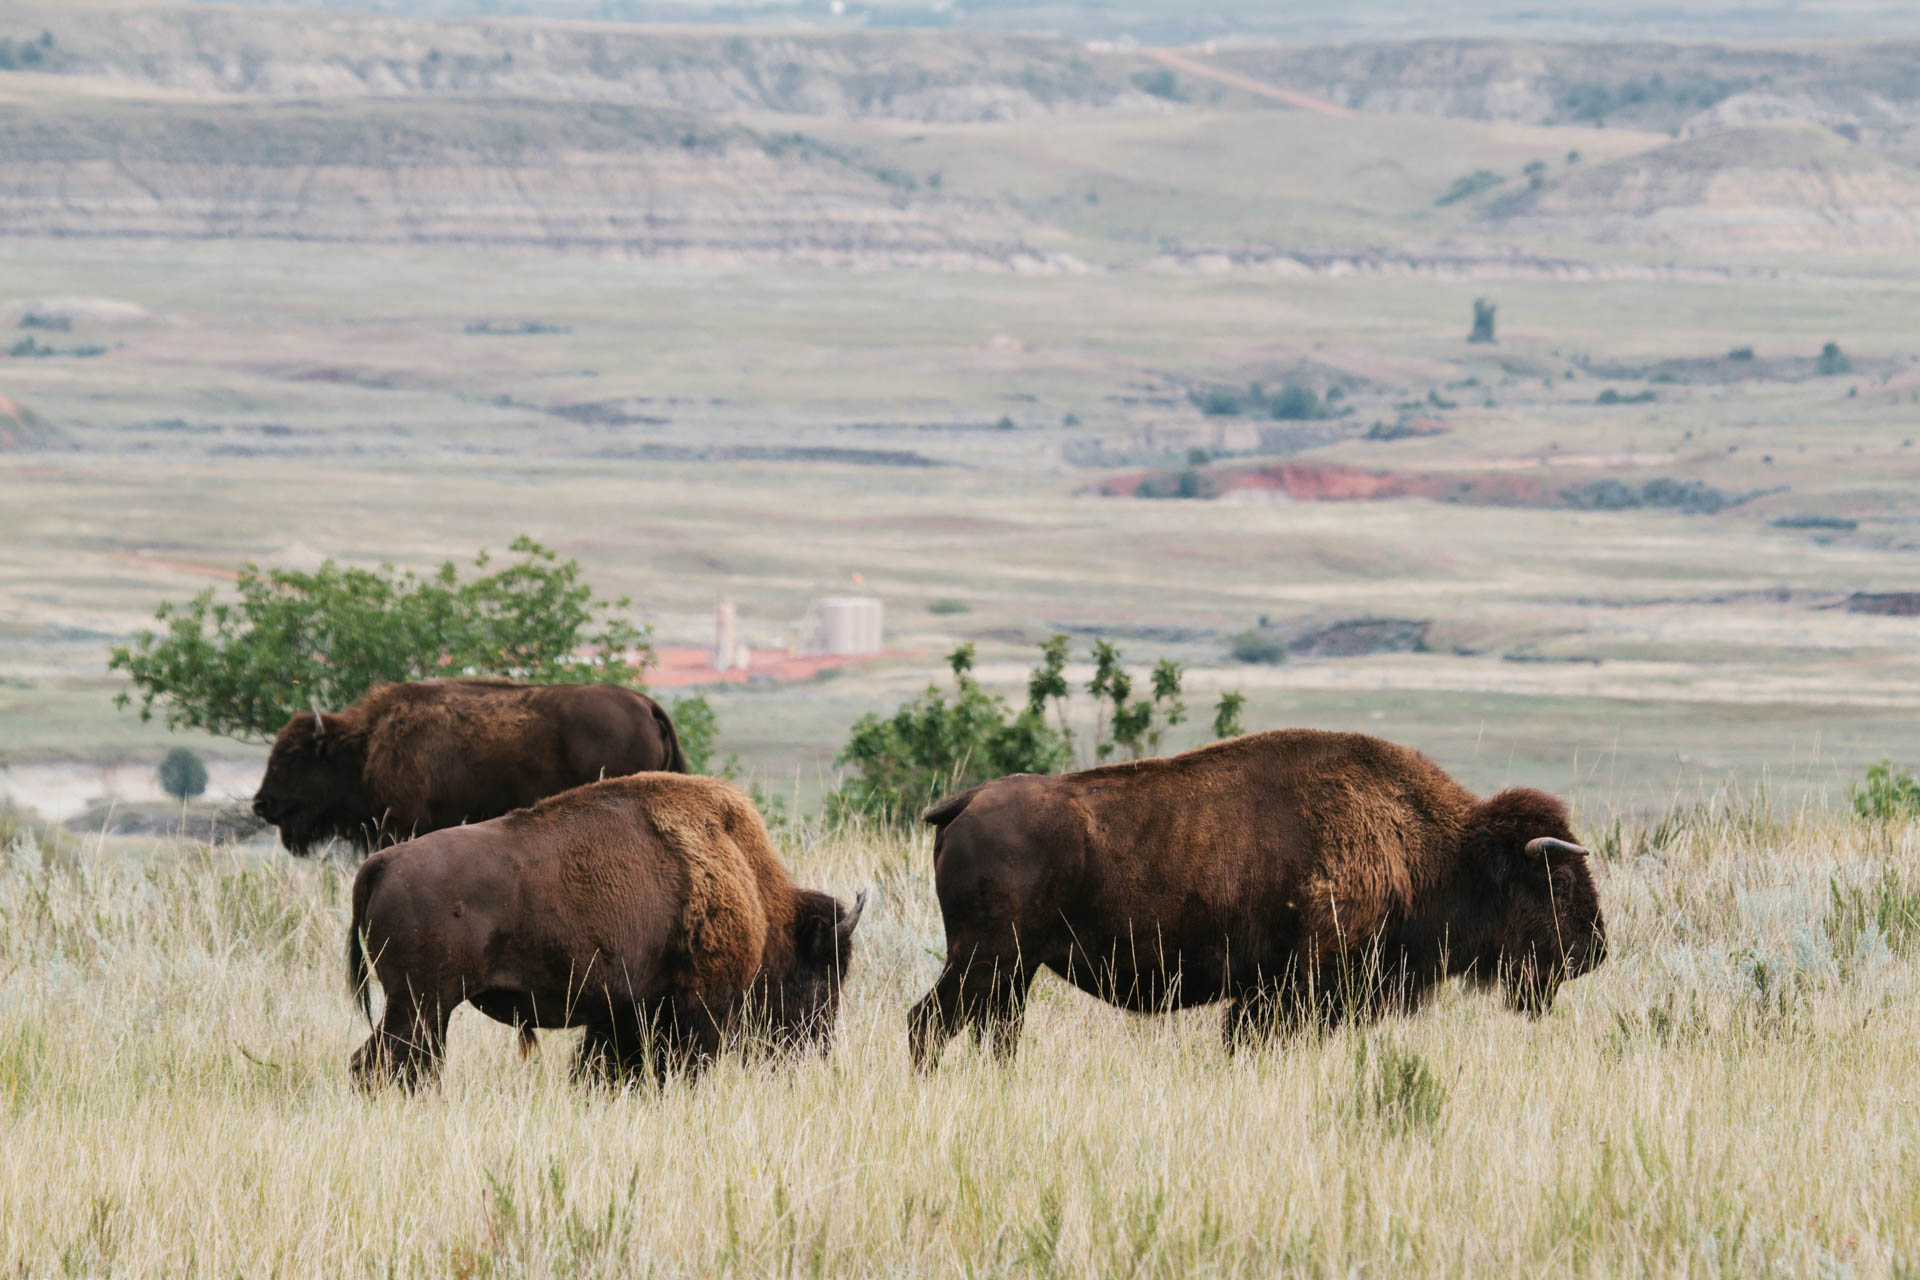 bison-near-drill-site-theodore-roosevelt-national-park